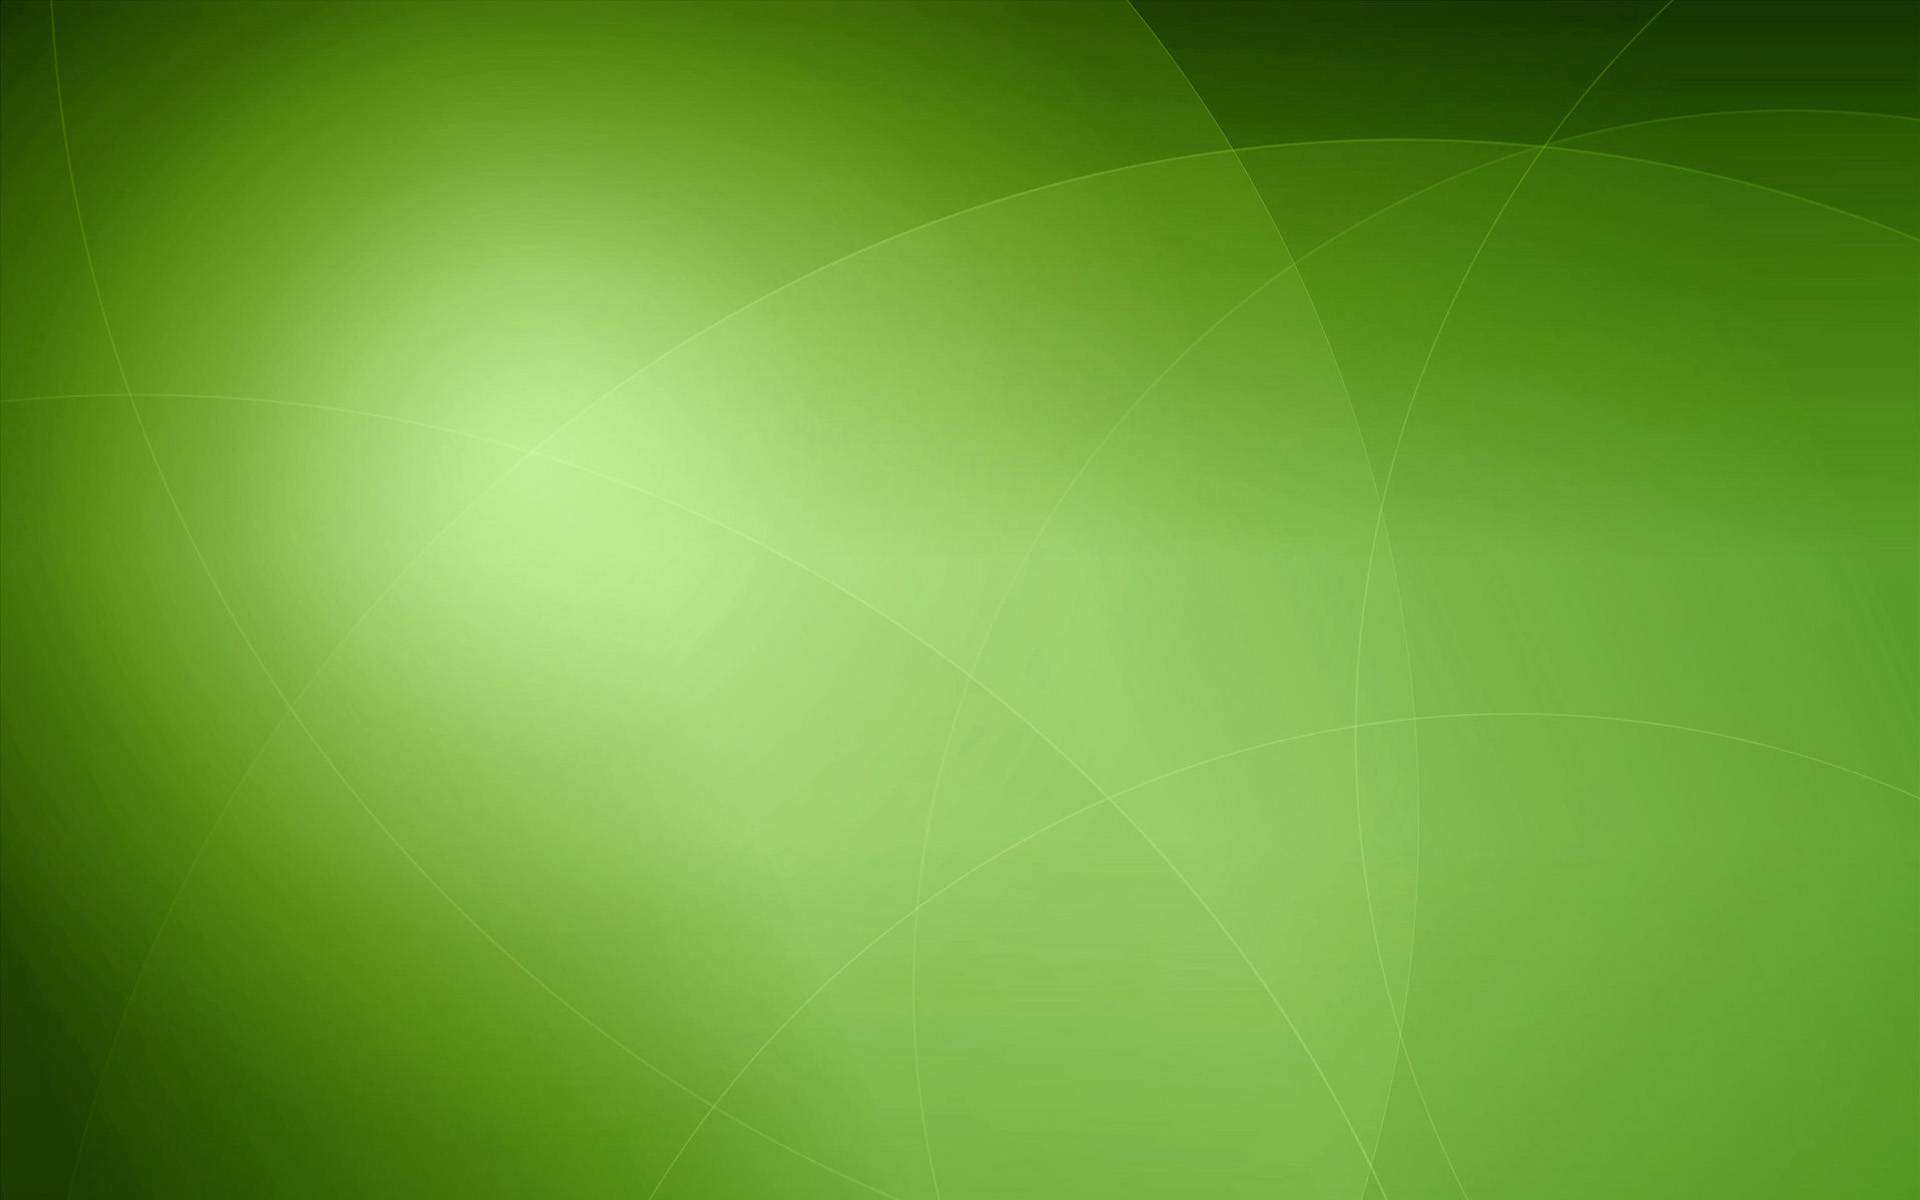 Hd Wallpapers Mobile Wallpaper Green Background Service